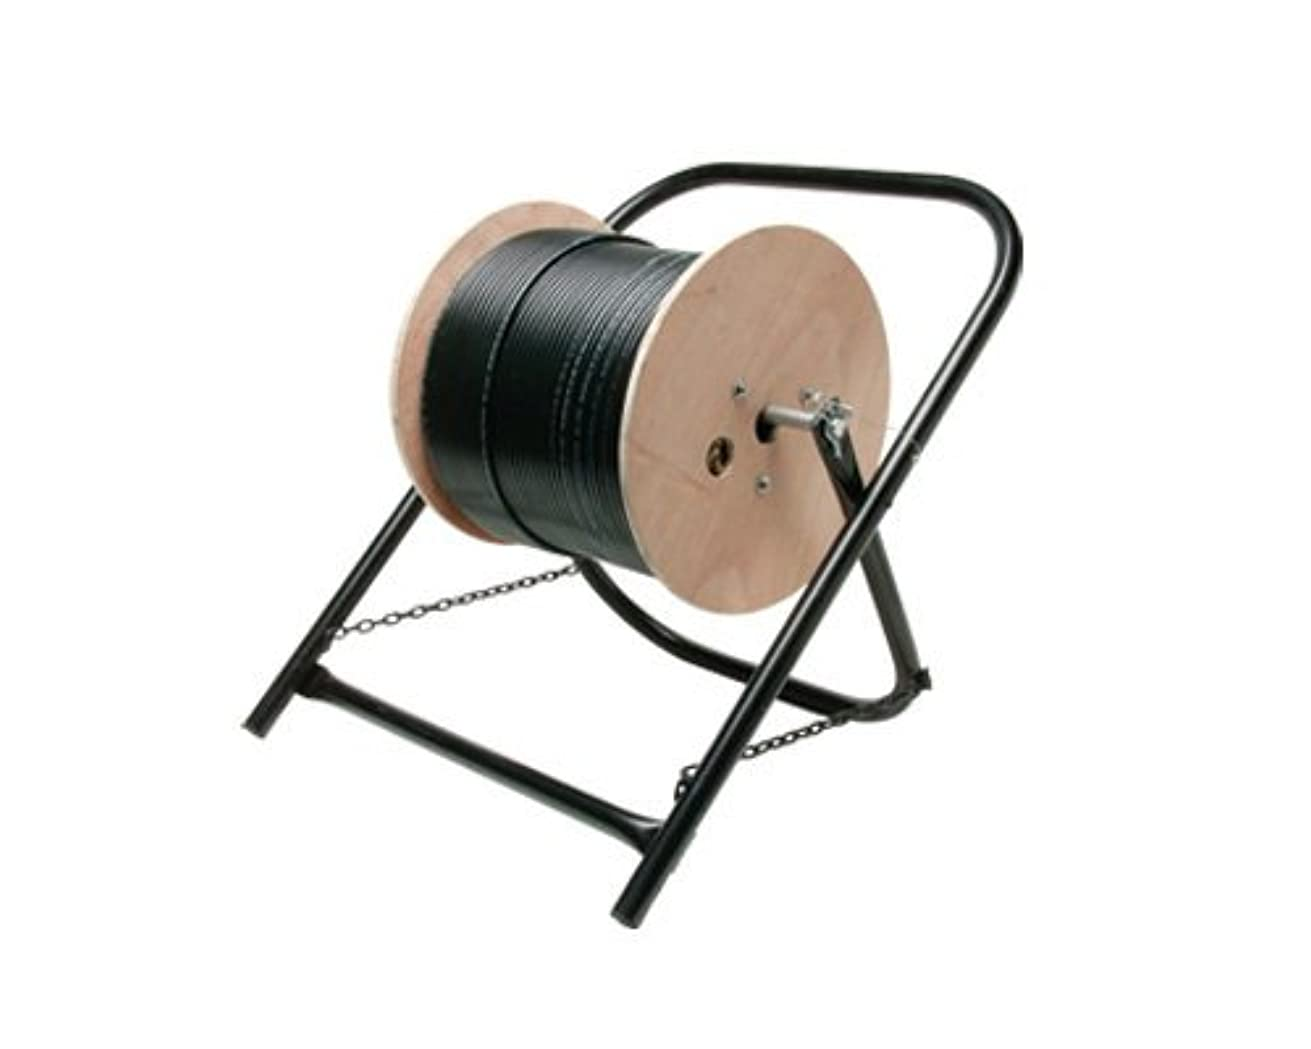 STEREN - CABLE CADDY - CABLE REEL STAND - HOLDS CABLE SPOOLS UP TO 20